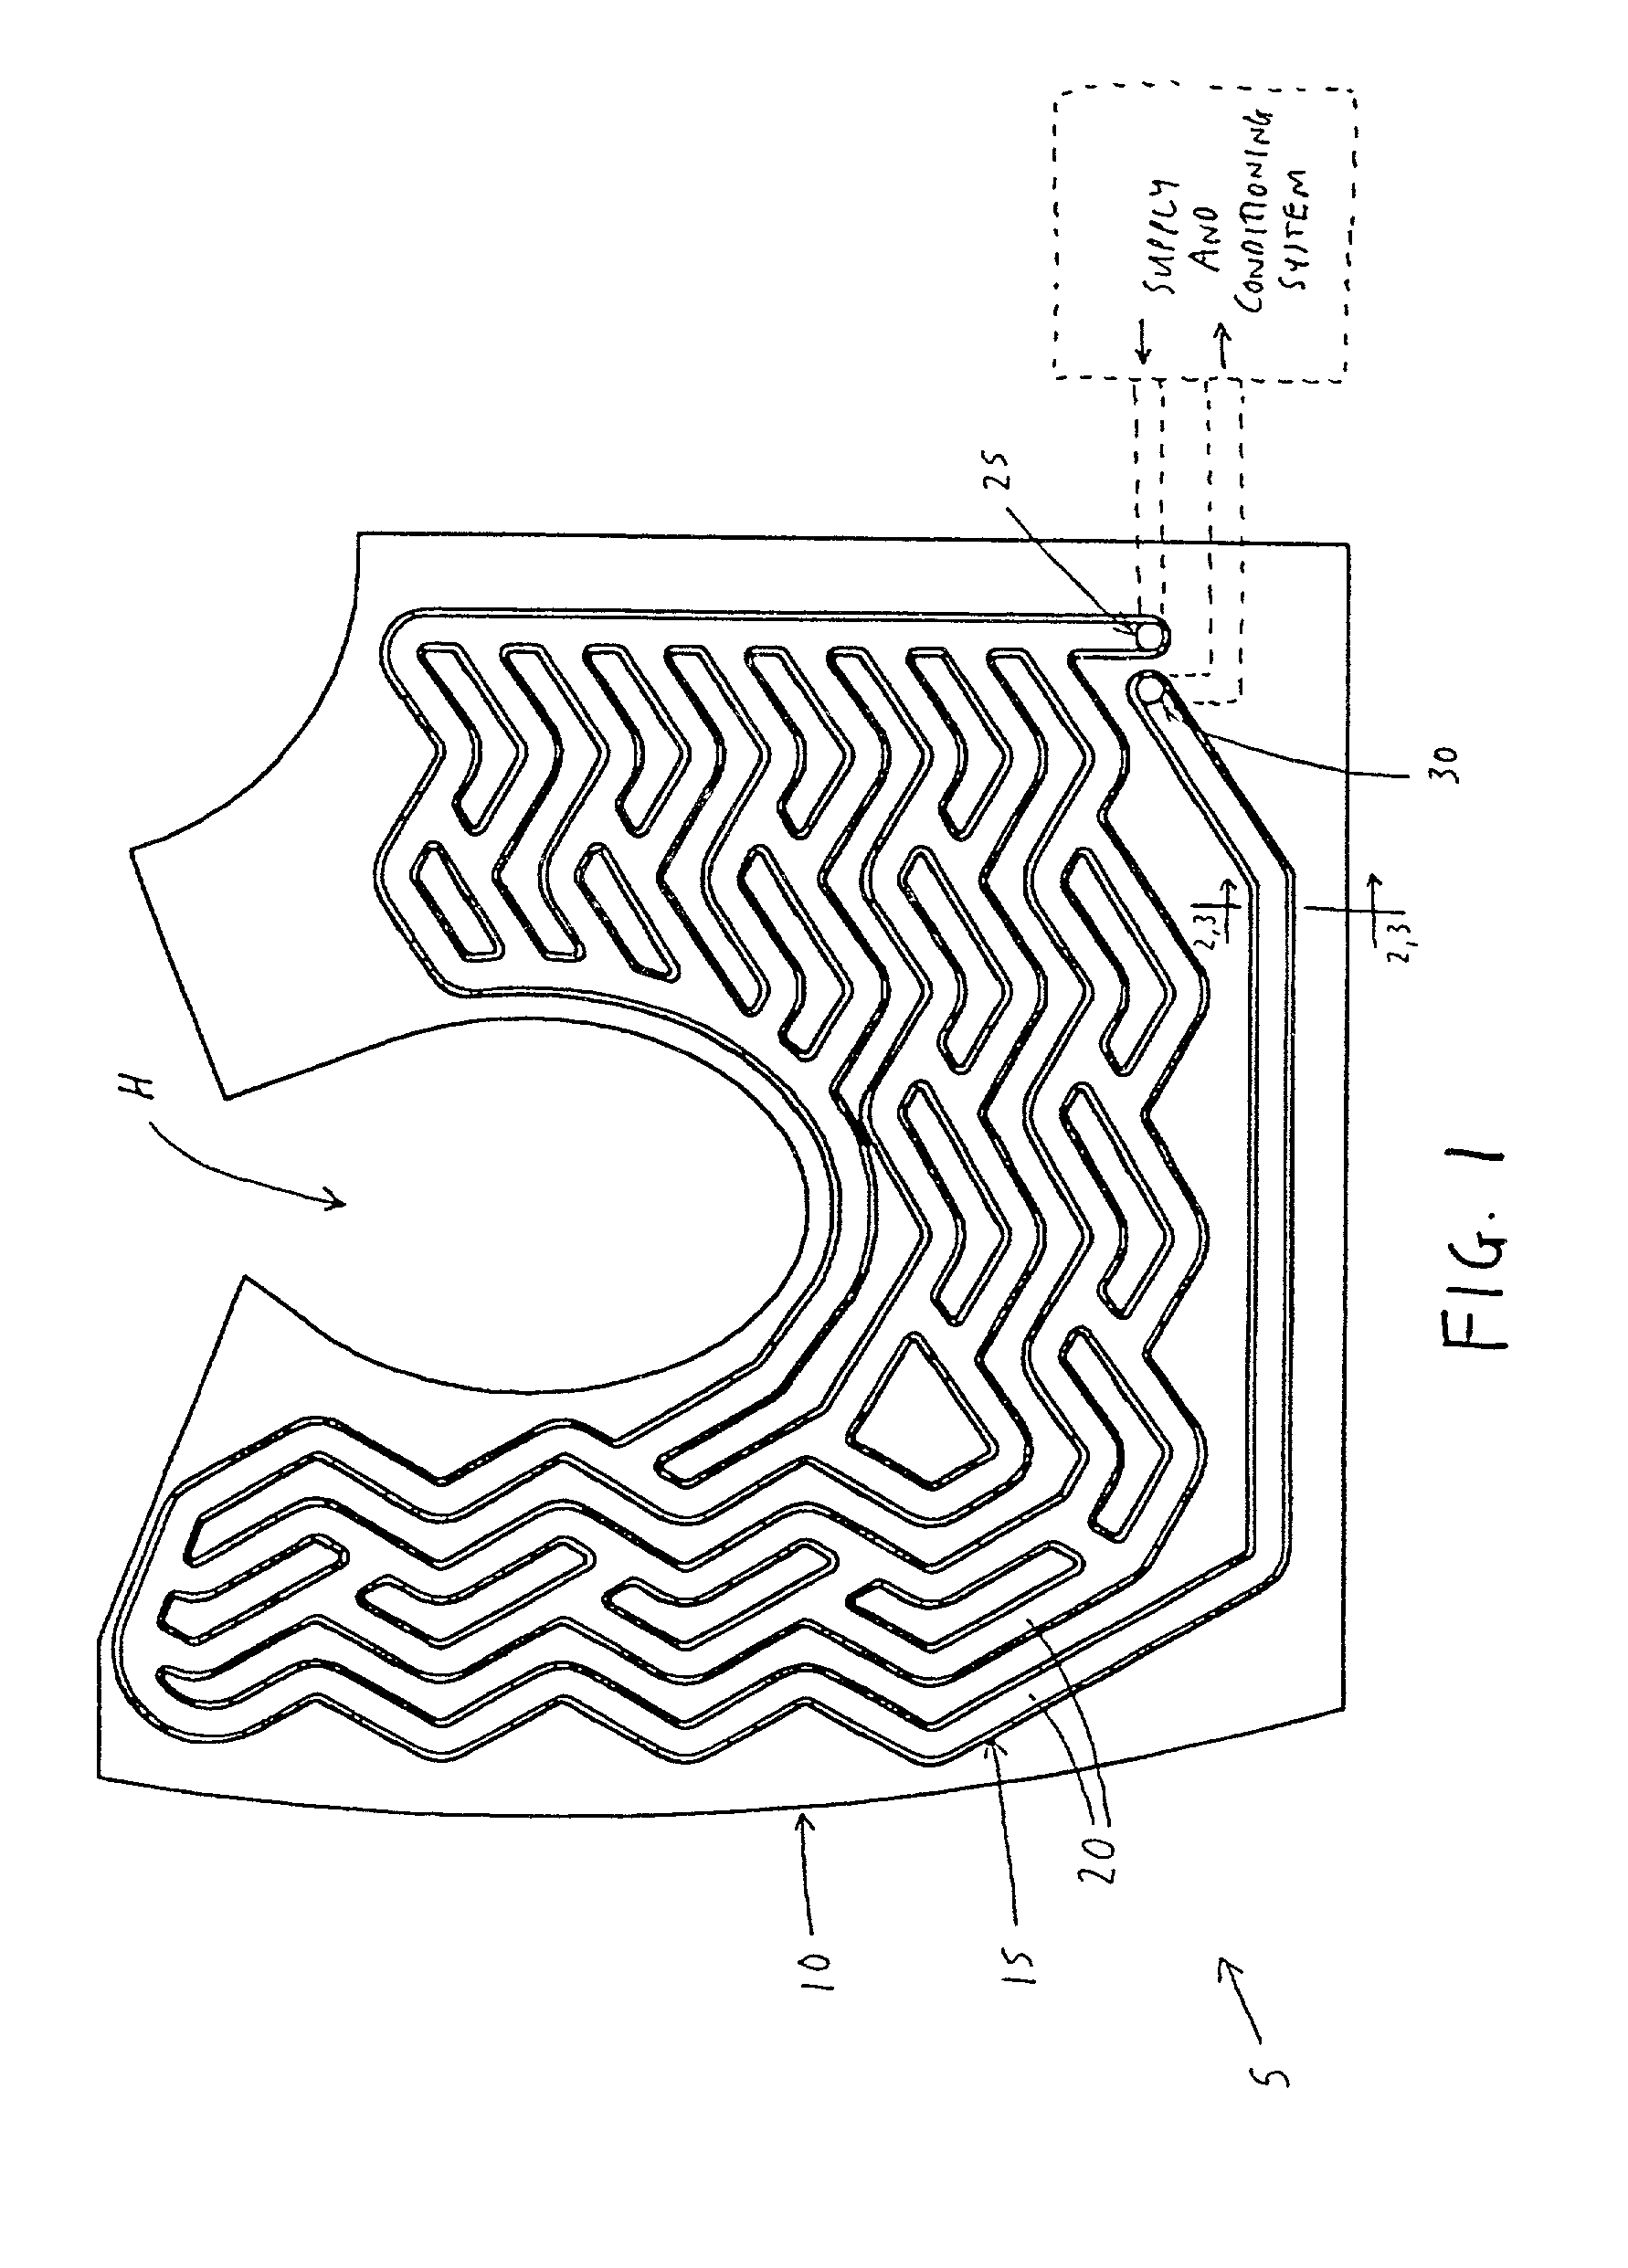 patent us20030028948 - personal cooling or warming system using closed loop fluid flow